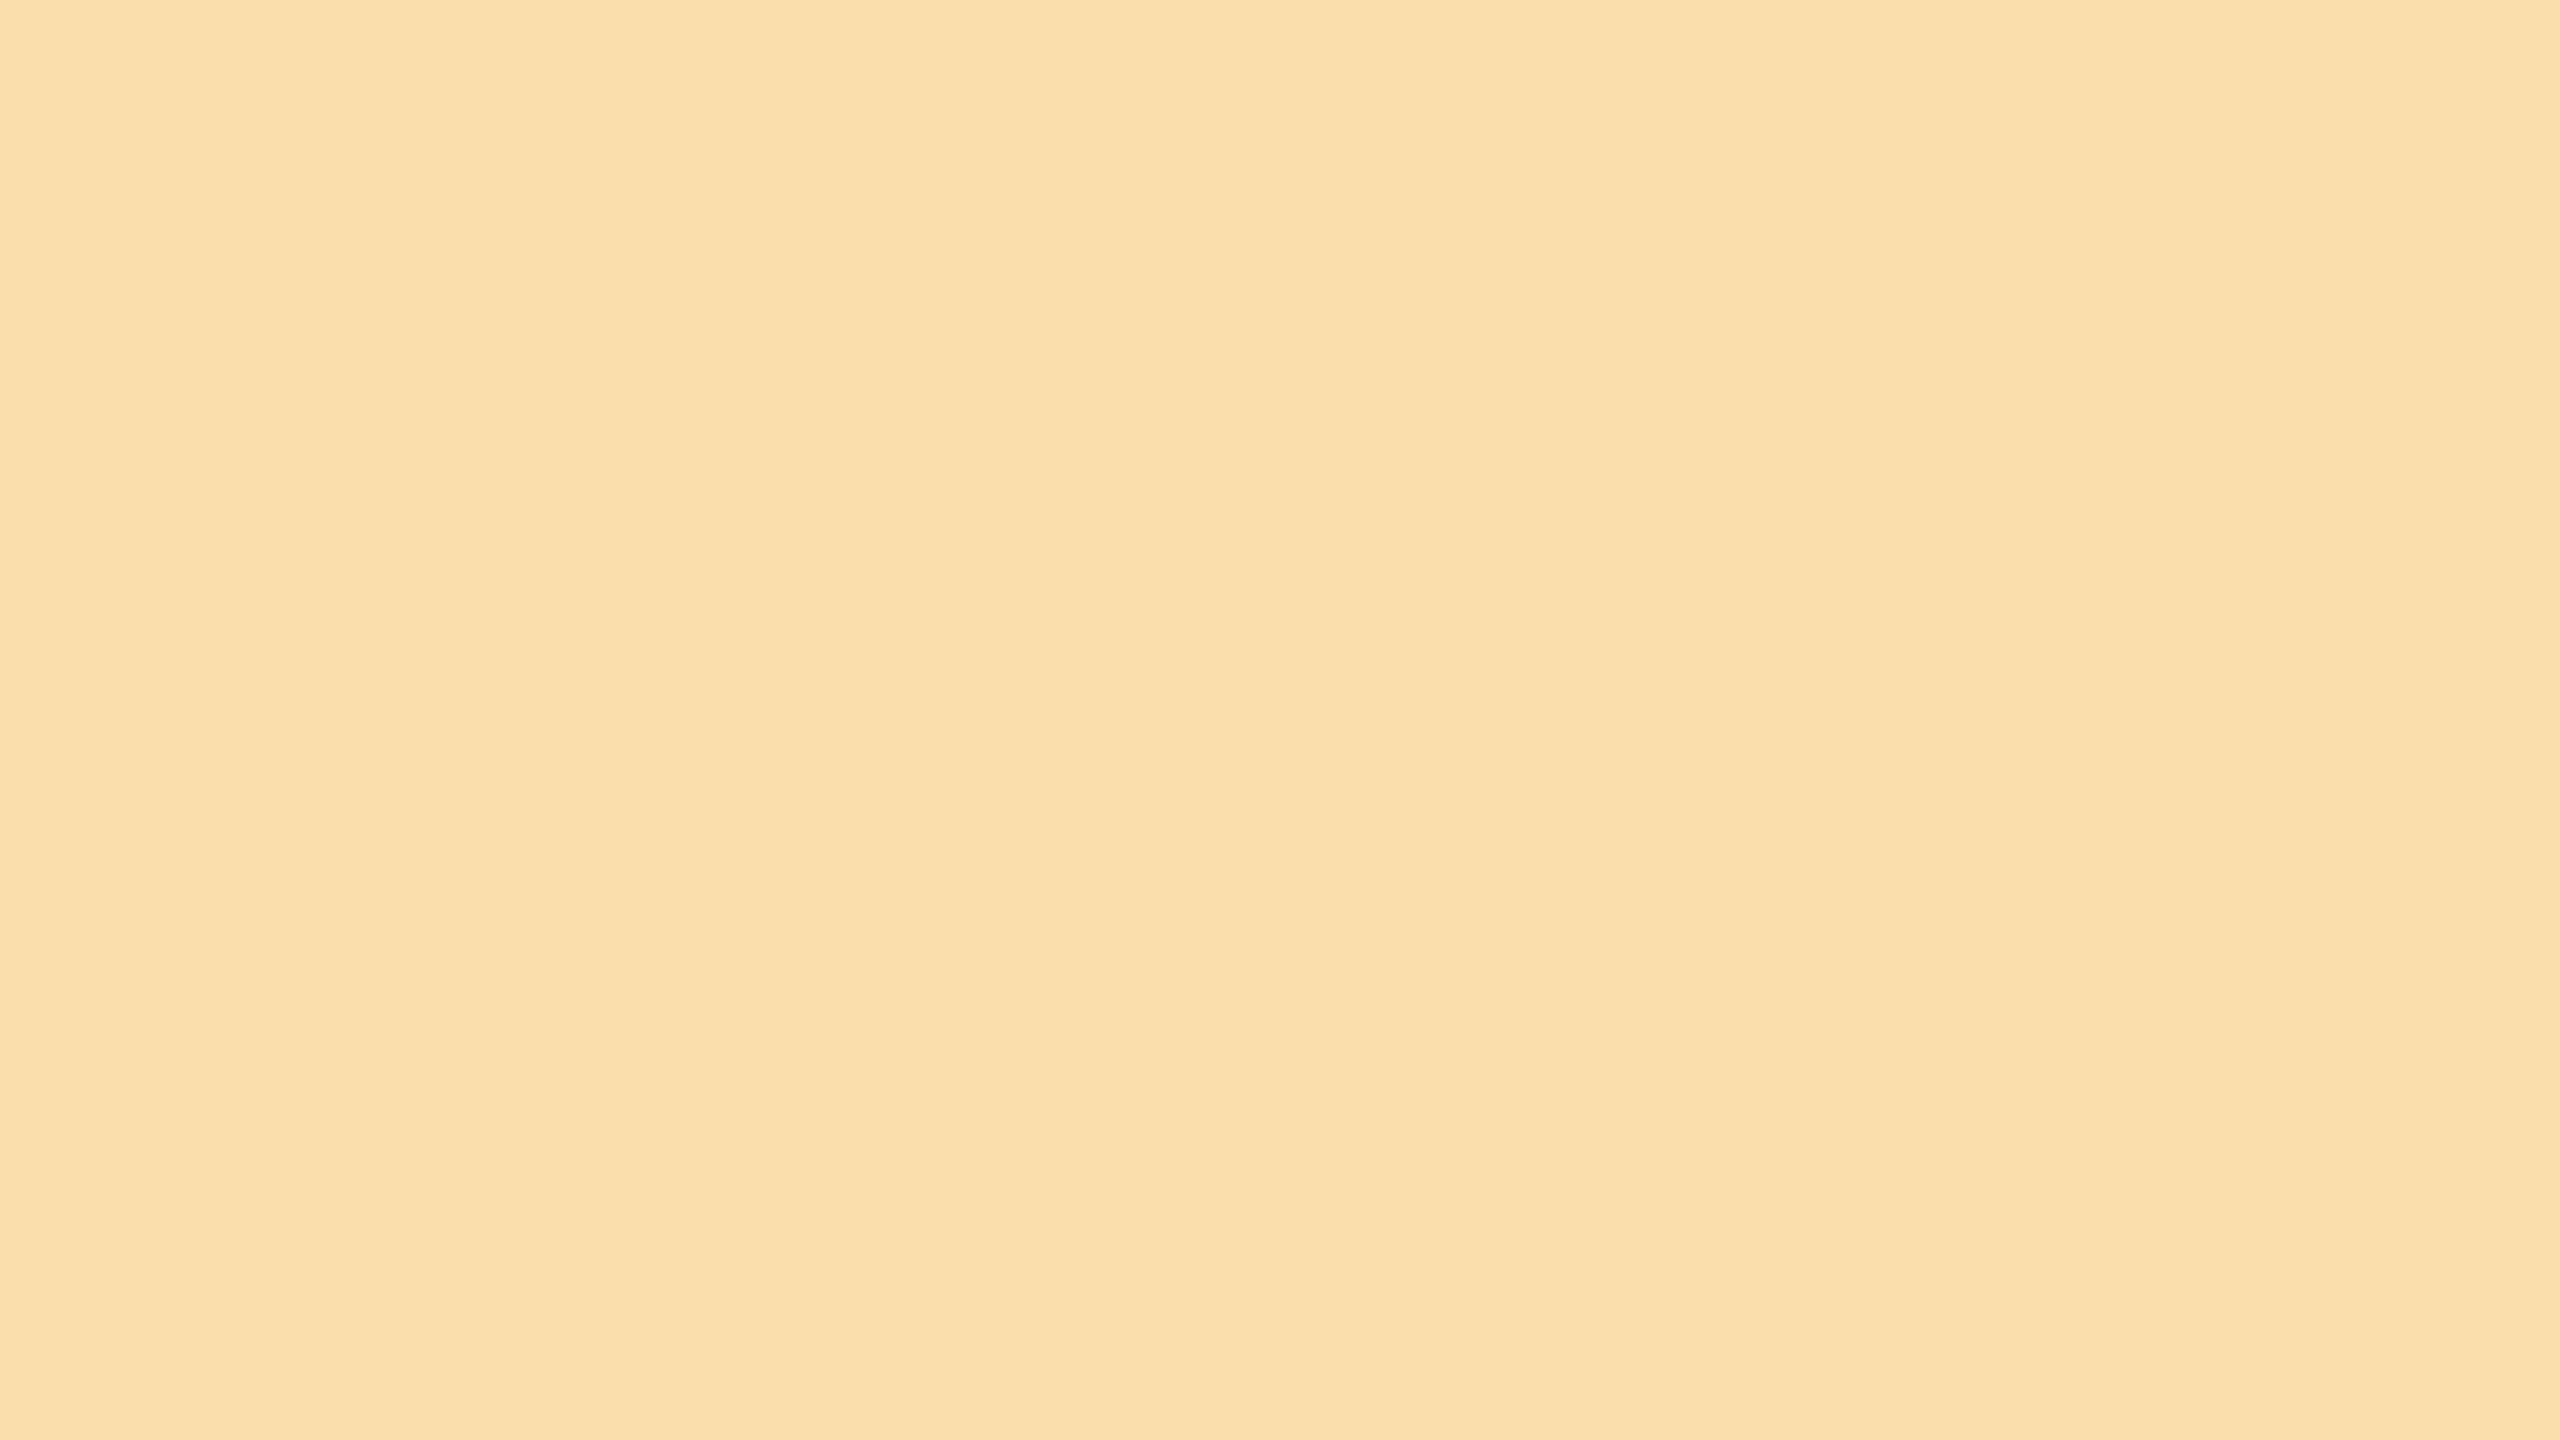 2560x1440 Peach-yellow Solid Color Background